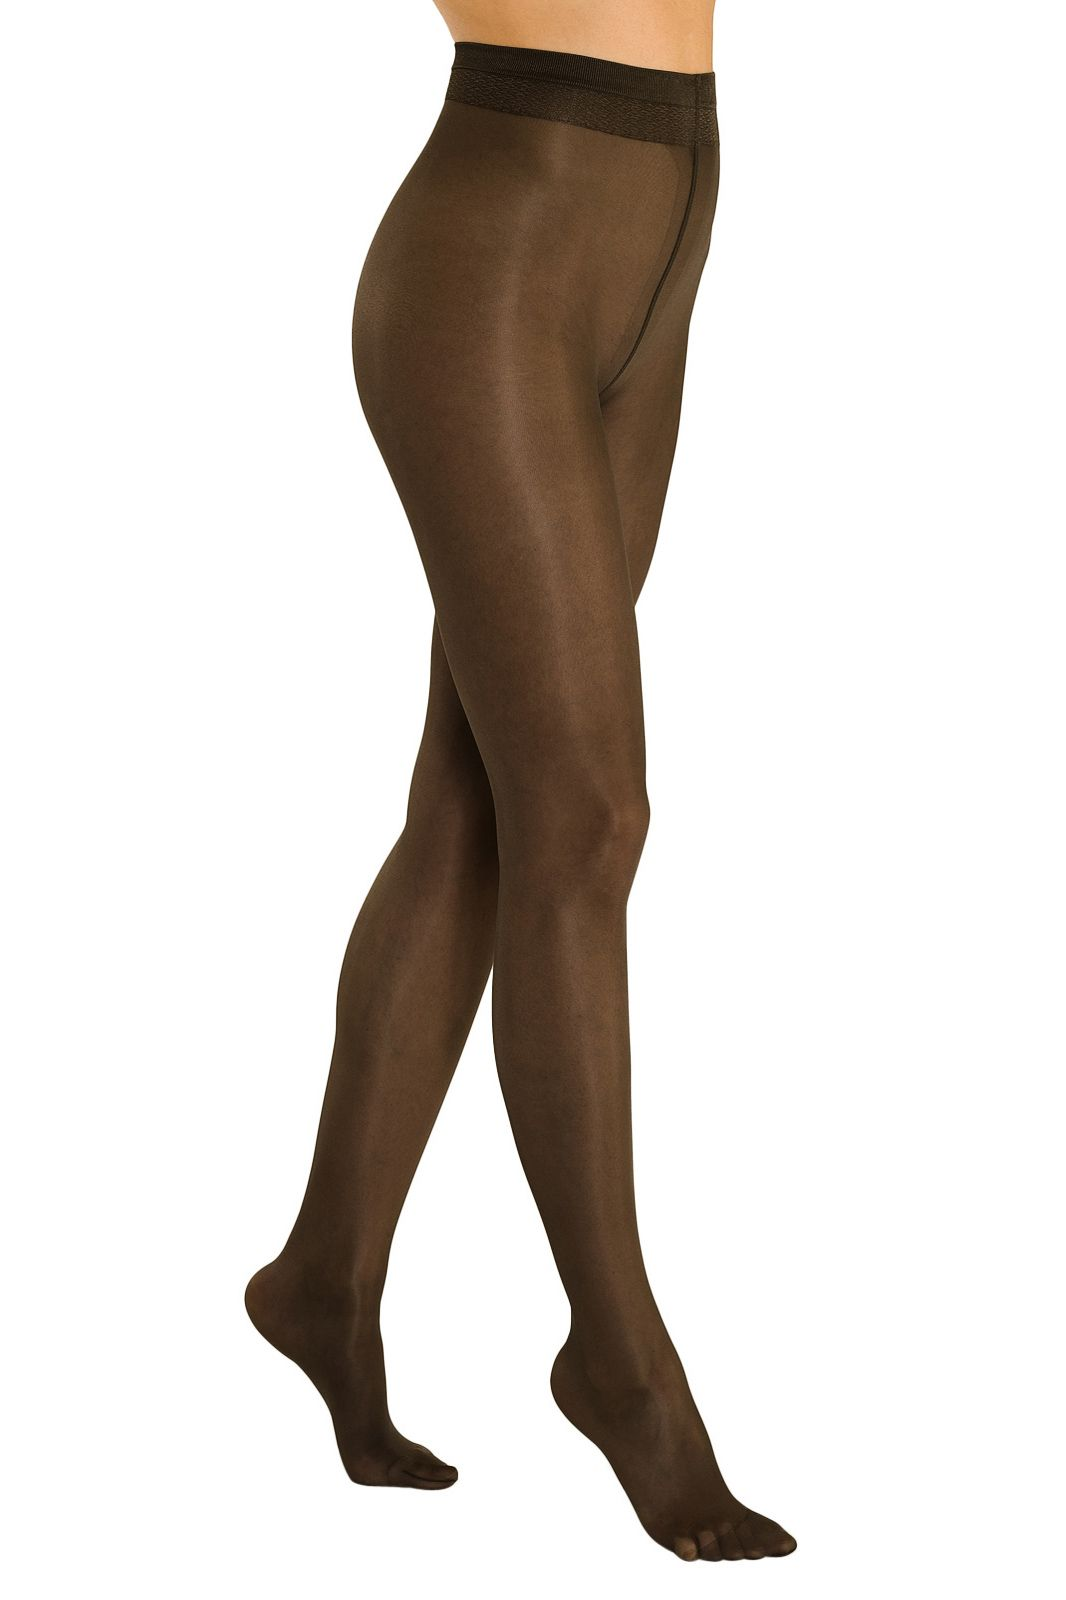 97adbb64ae Solidea Venere 140 Sheer Tights - Daylong